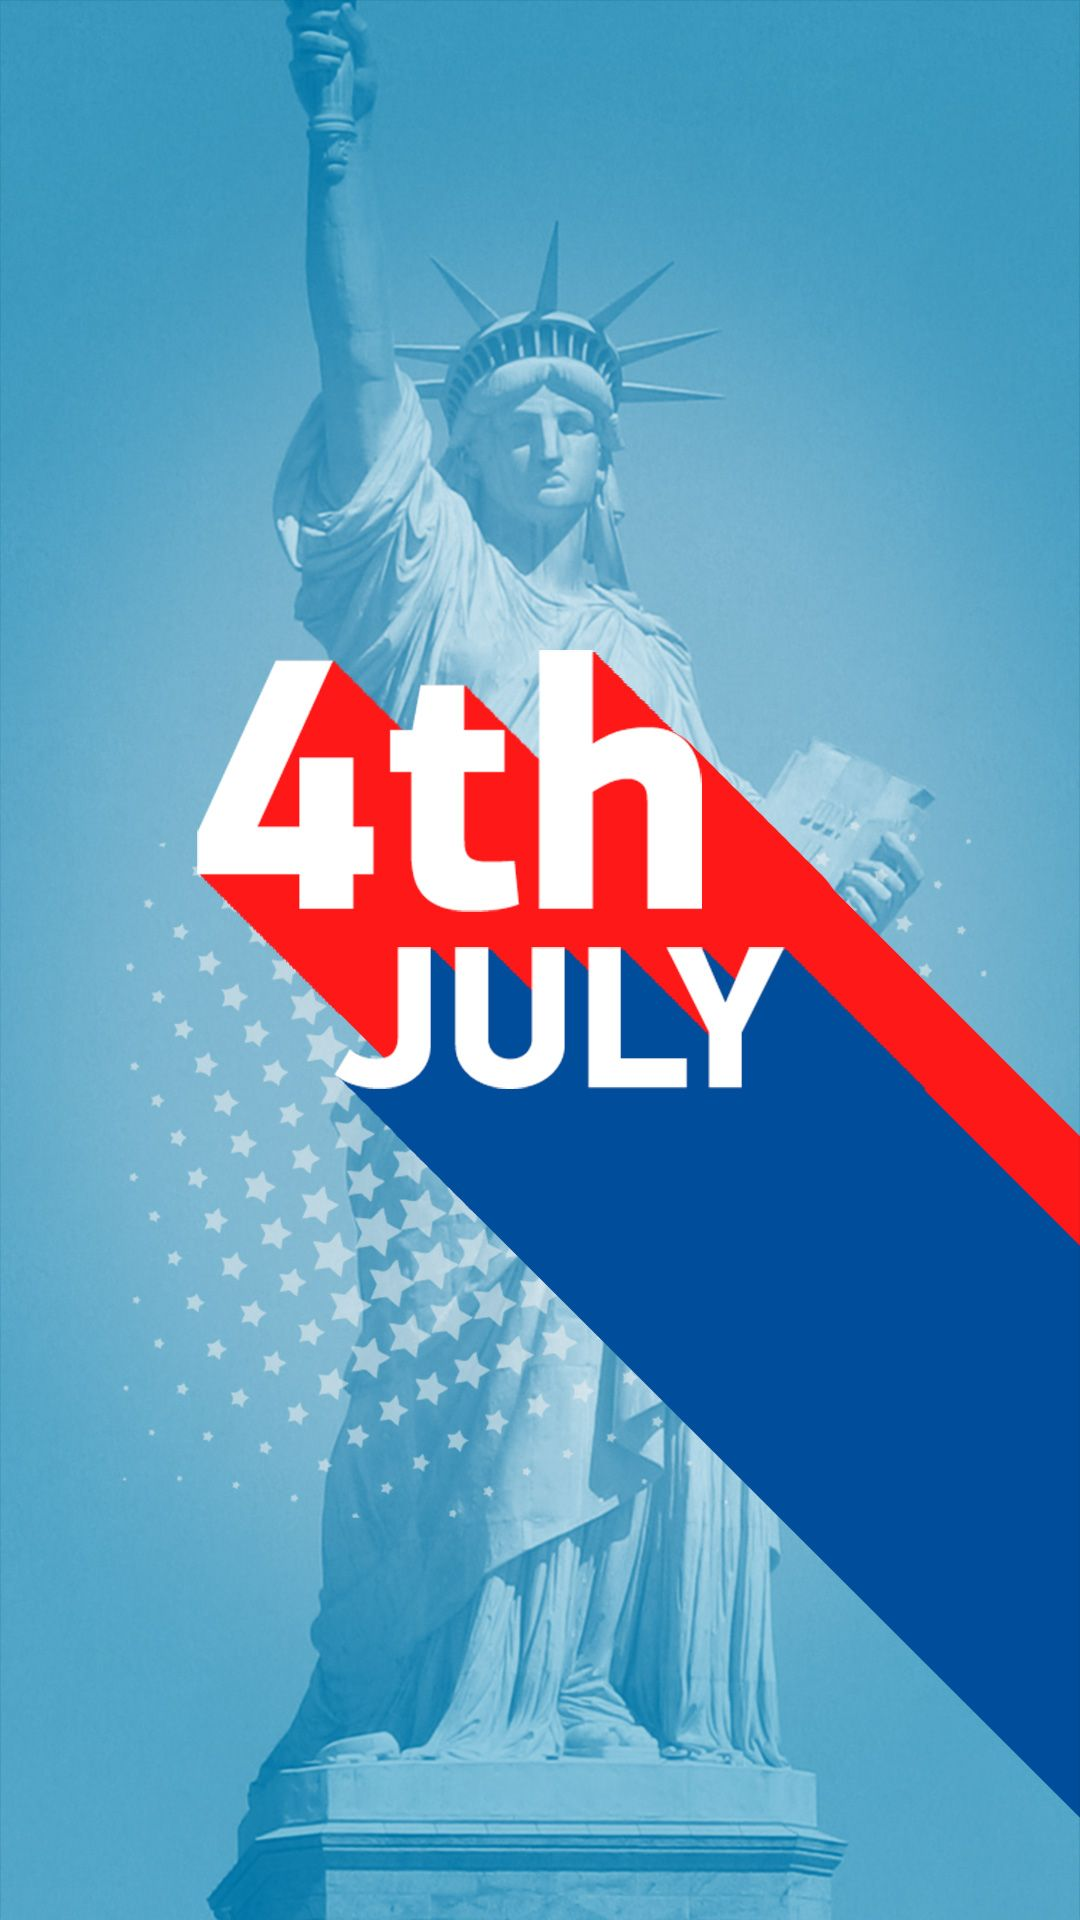 ↑↑TAP AND GET THE FREE APP Art Creative USA independence Day 4th